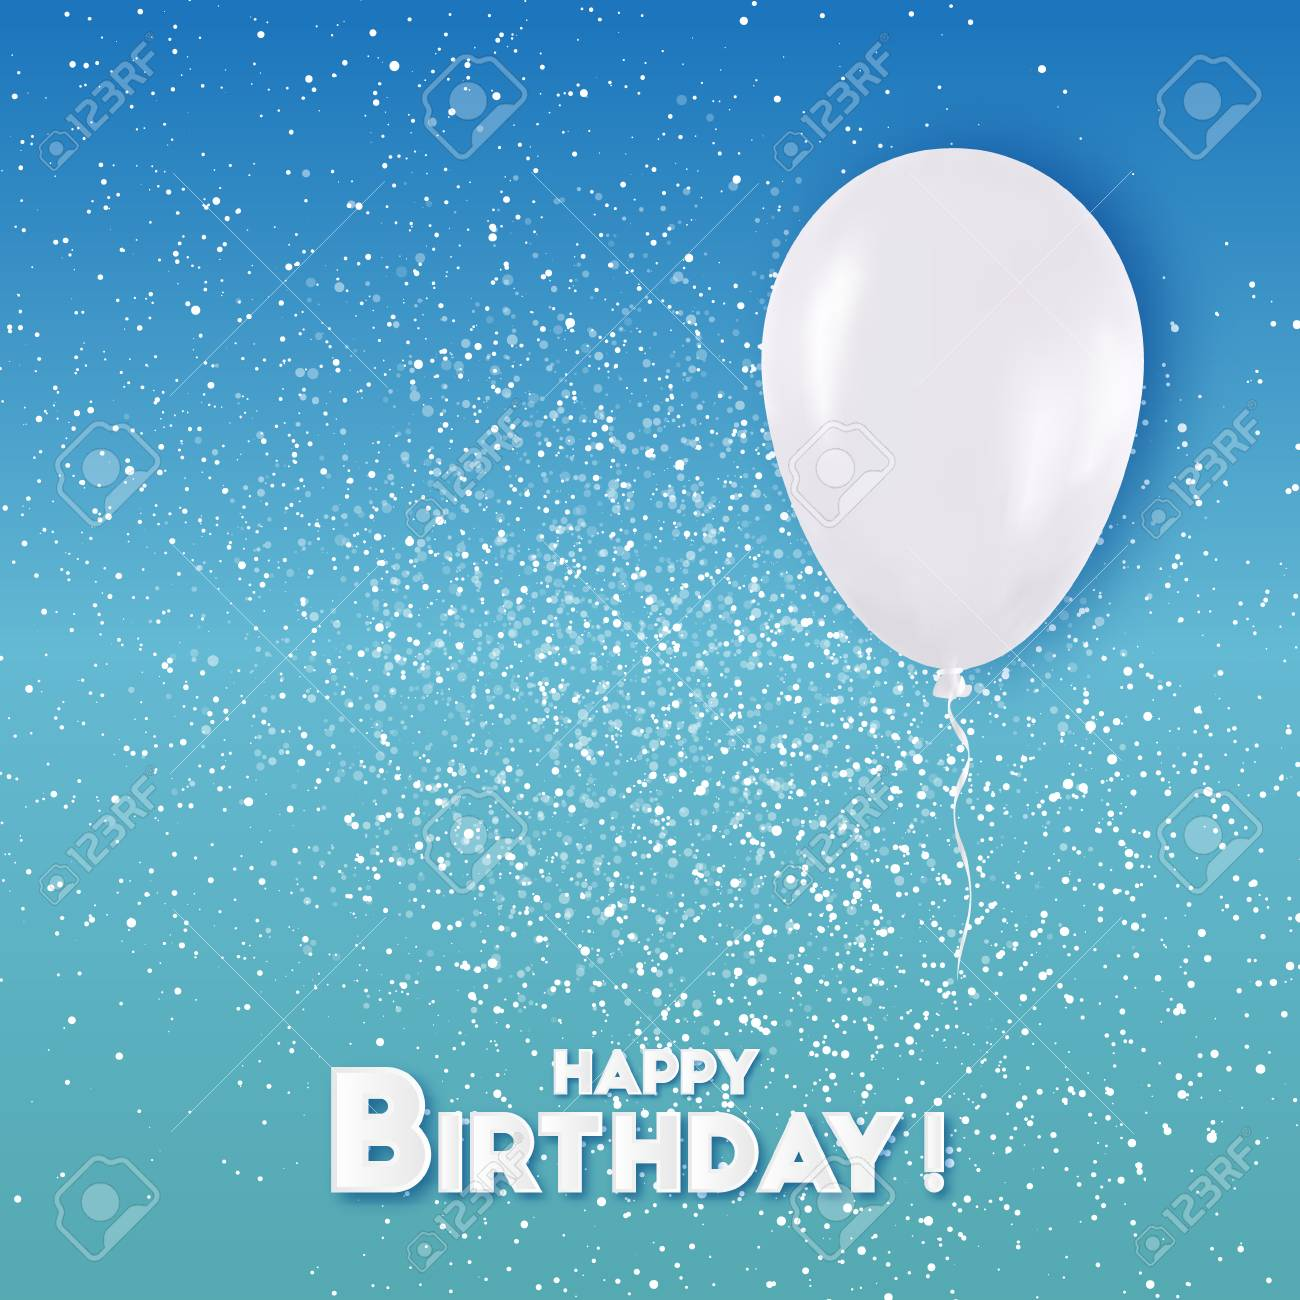 White Happy Birthday Balloons Flying For Party And Celebrations Royalty Free Cliparts Vectors And Stock Illustration Image 68403845